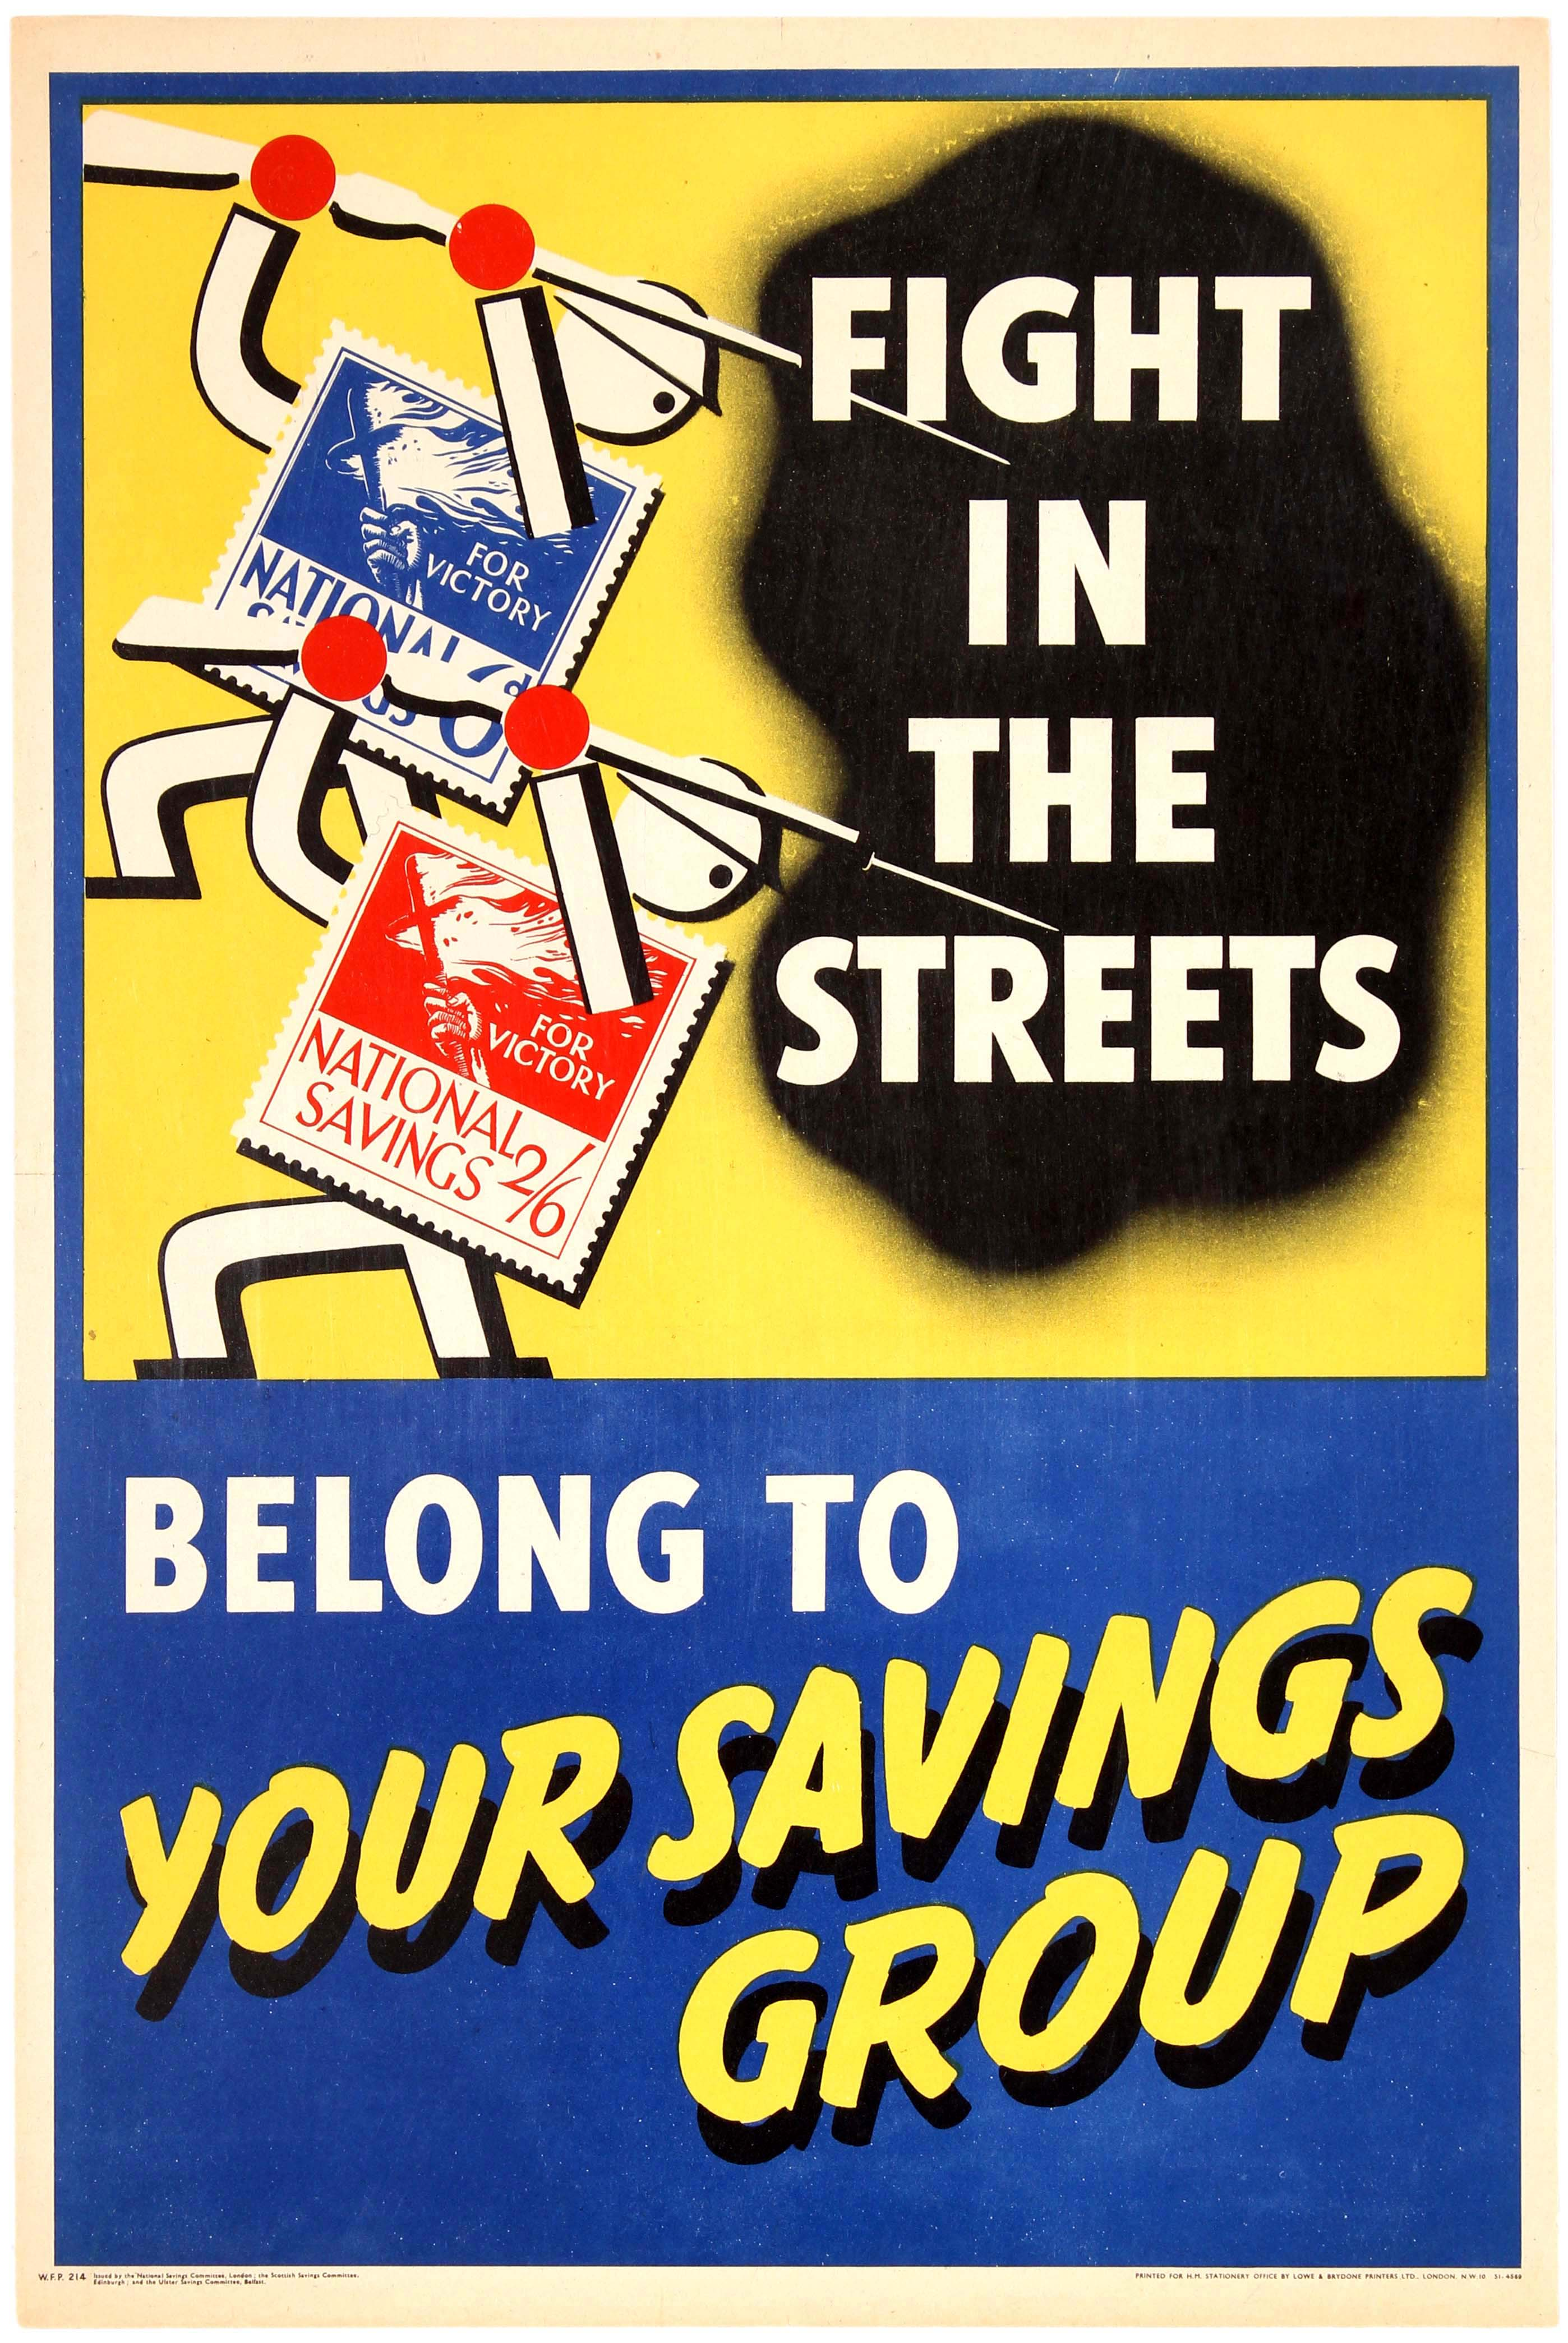 Lot 32 - Propaganda Poster British WWII Home Front Savings Group 1940s